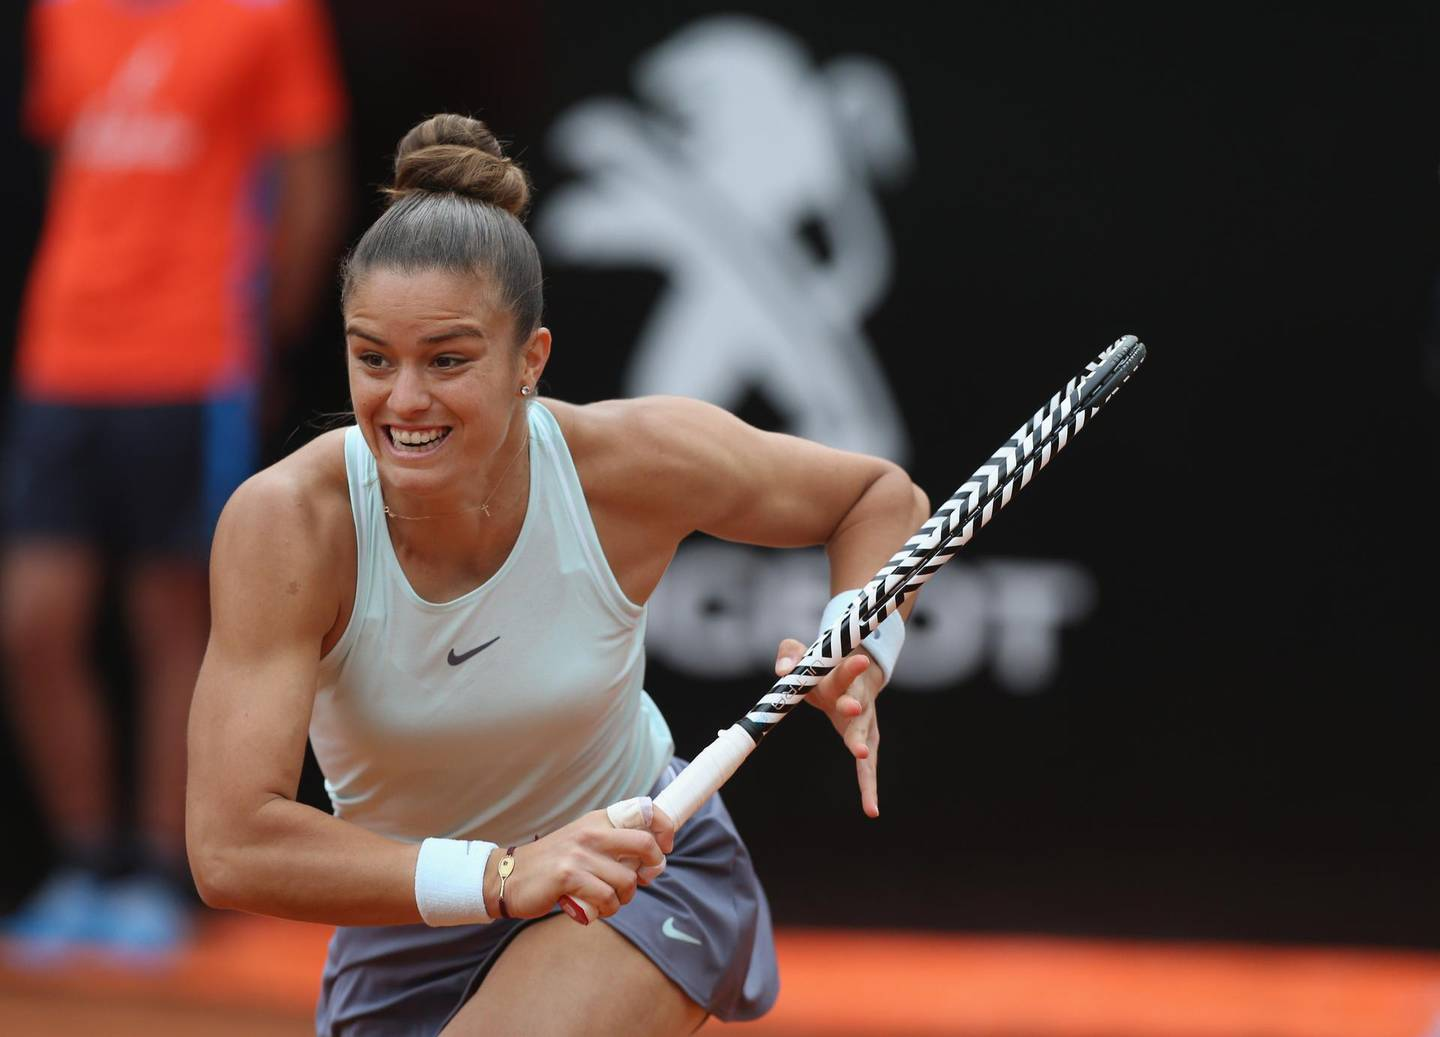 ROME, ITALY - MAY 18:  Maria Sakkari of Greece in action against Karolina Pliskova of Czech Republic in their Women's singles semi-final match during Day seven of the International BNL d'Italia at Foro Italico on May 18, 2019 in Rome, Italy.  (Photo by Paolo Bruno/Getty Images)